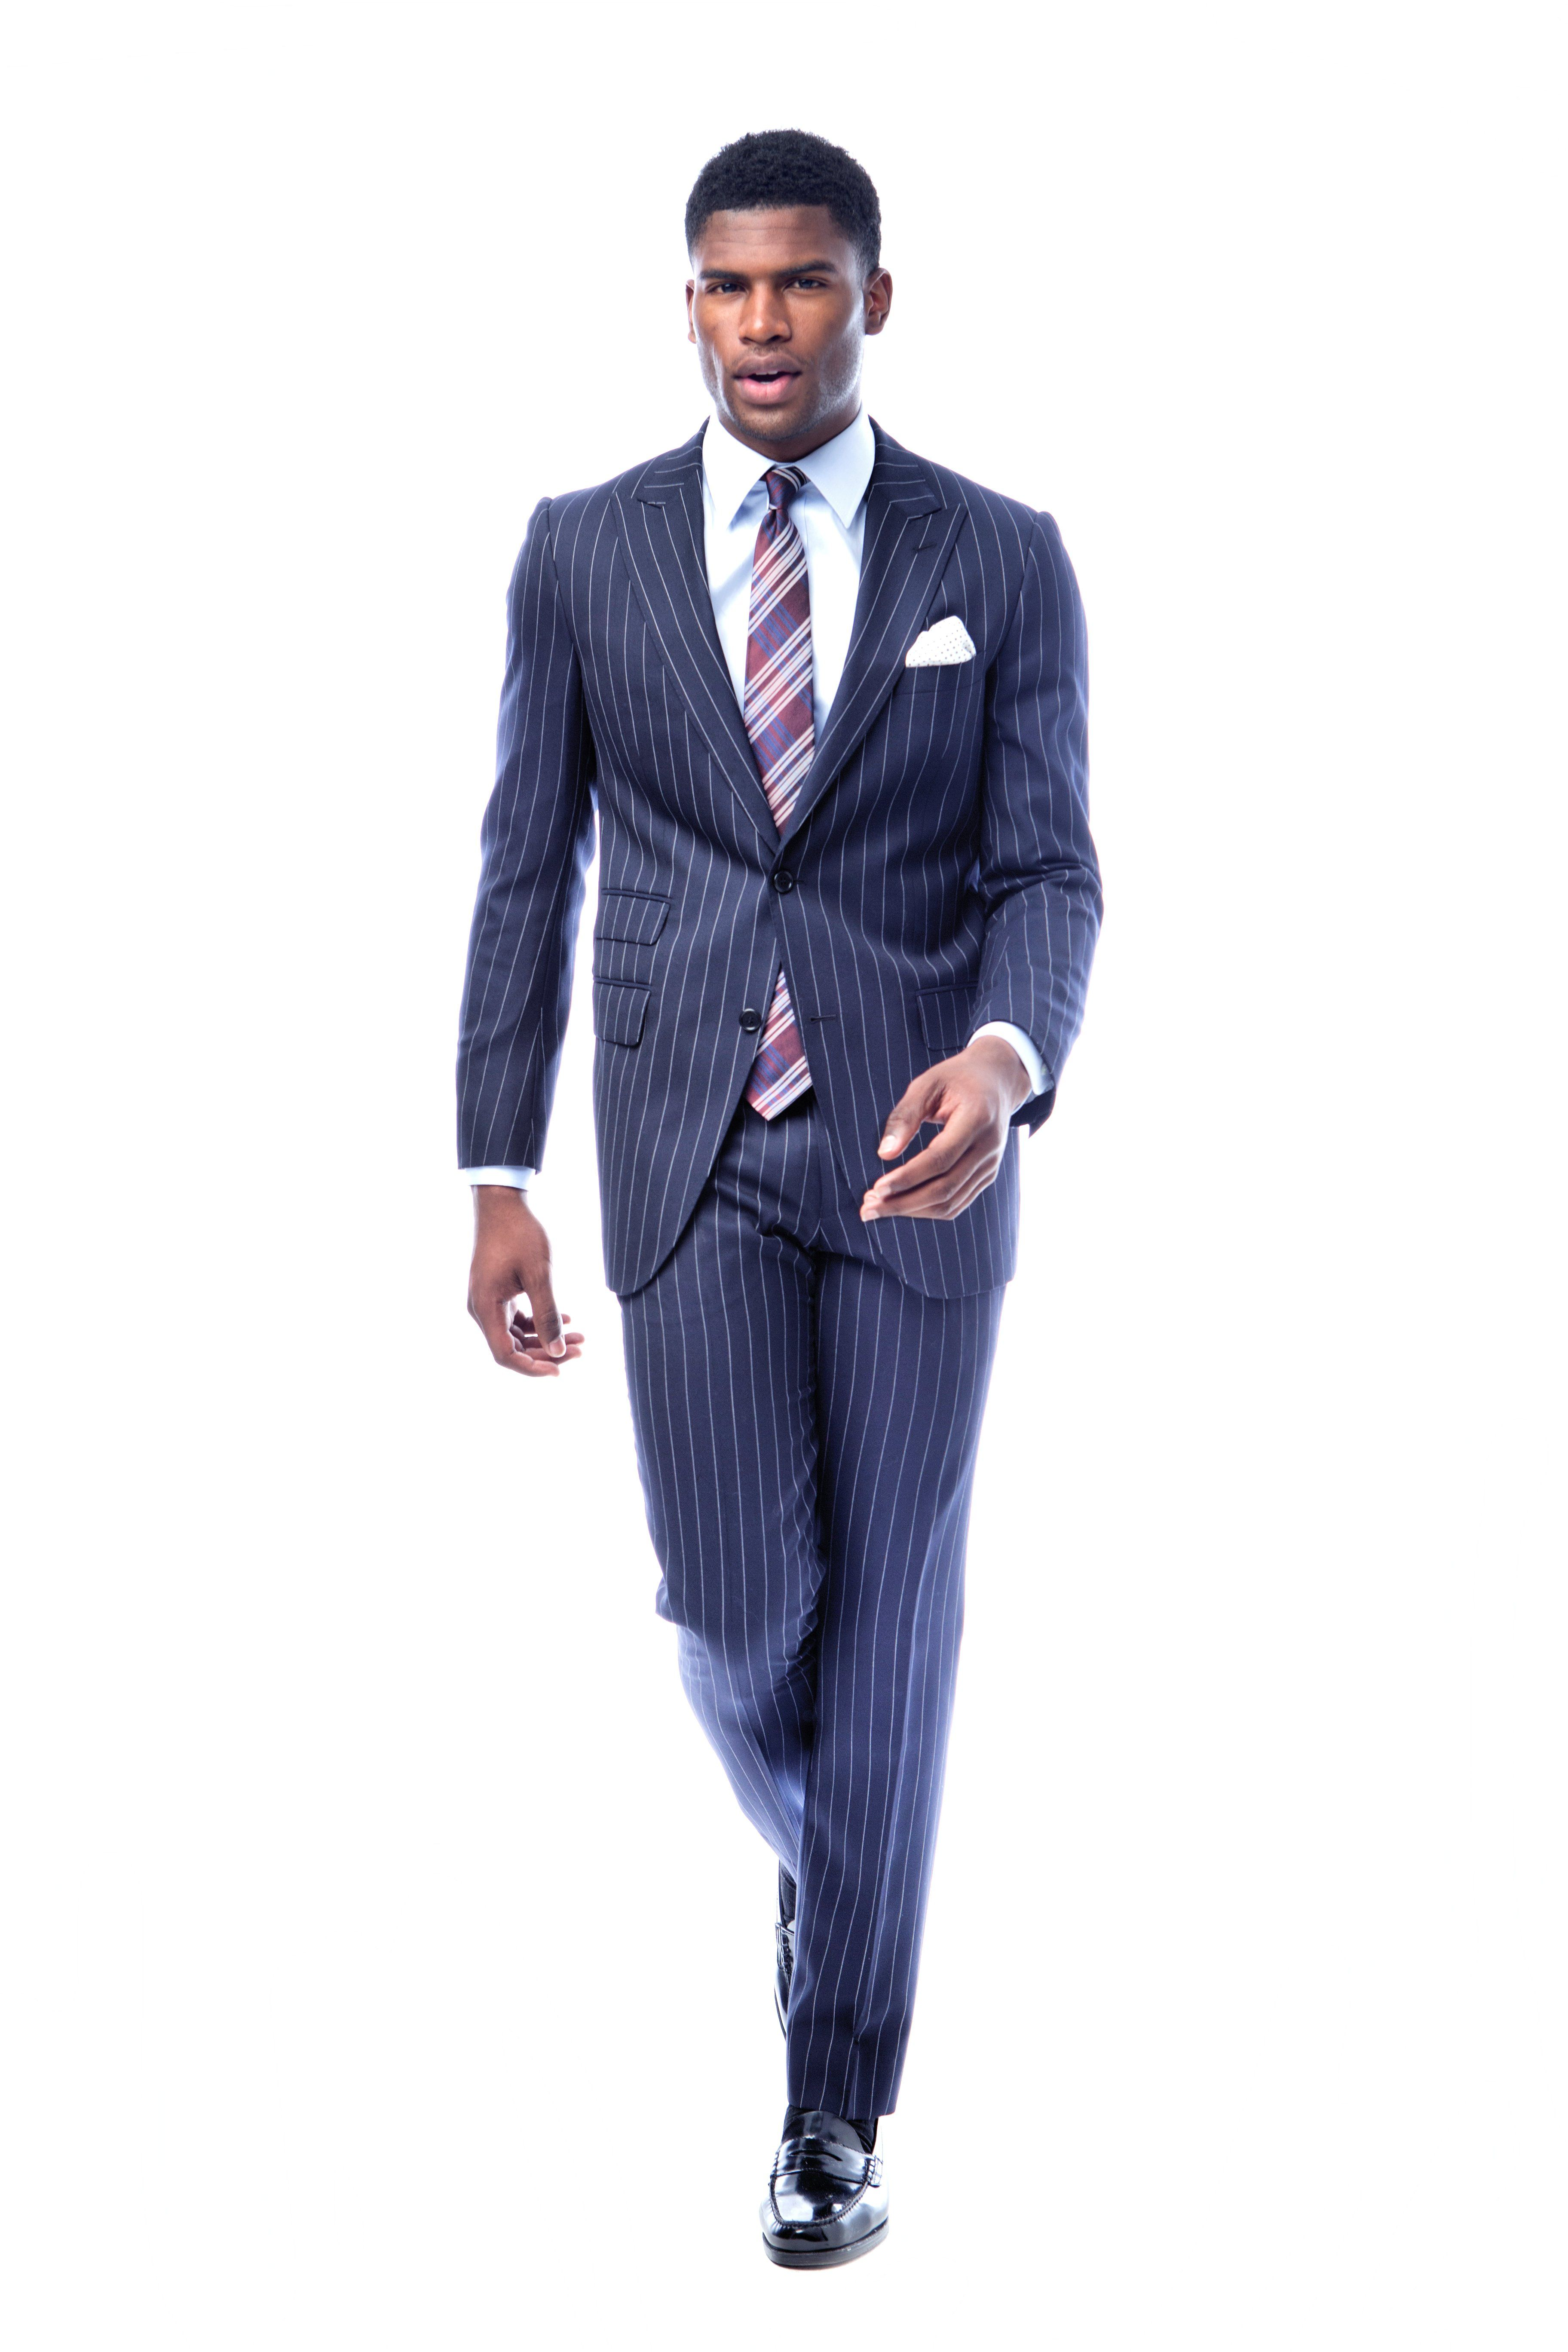 CLASSIC NAVY CHALKSTRIPE SUIT - $495 Nothing says Classic like a ...